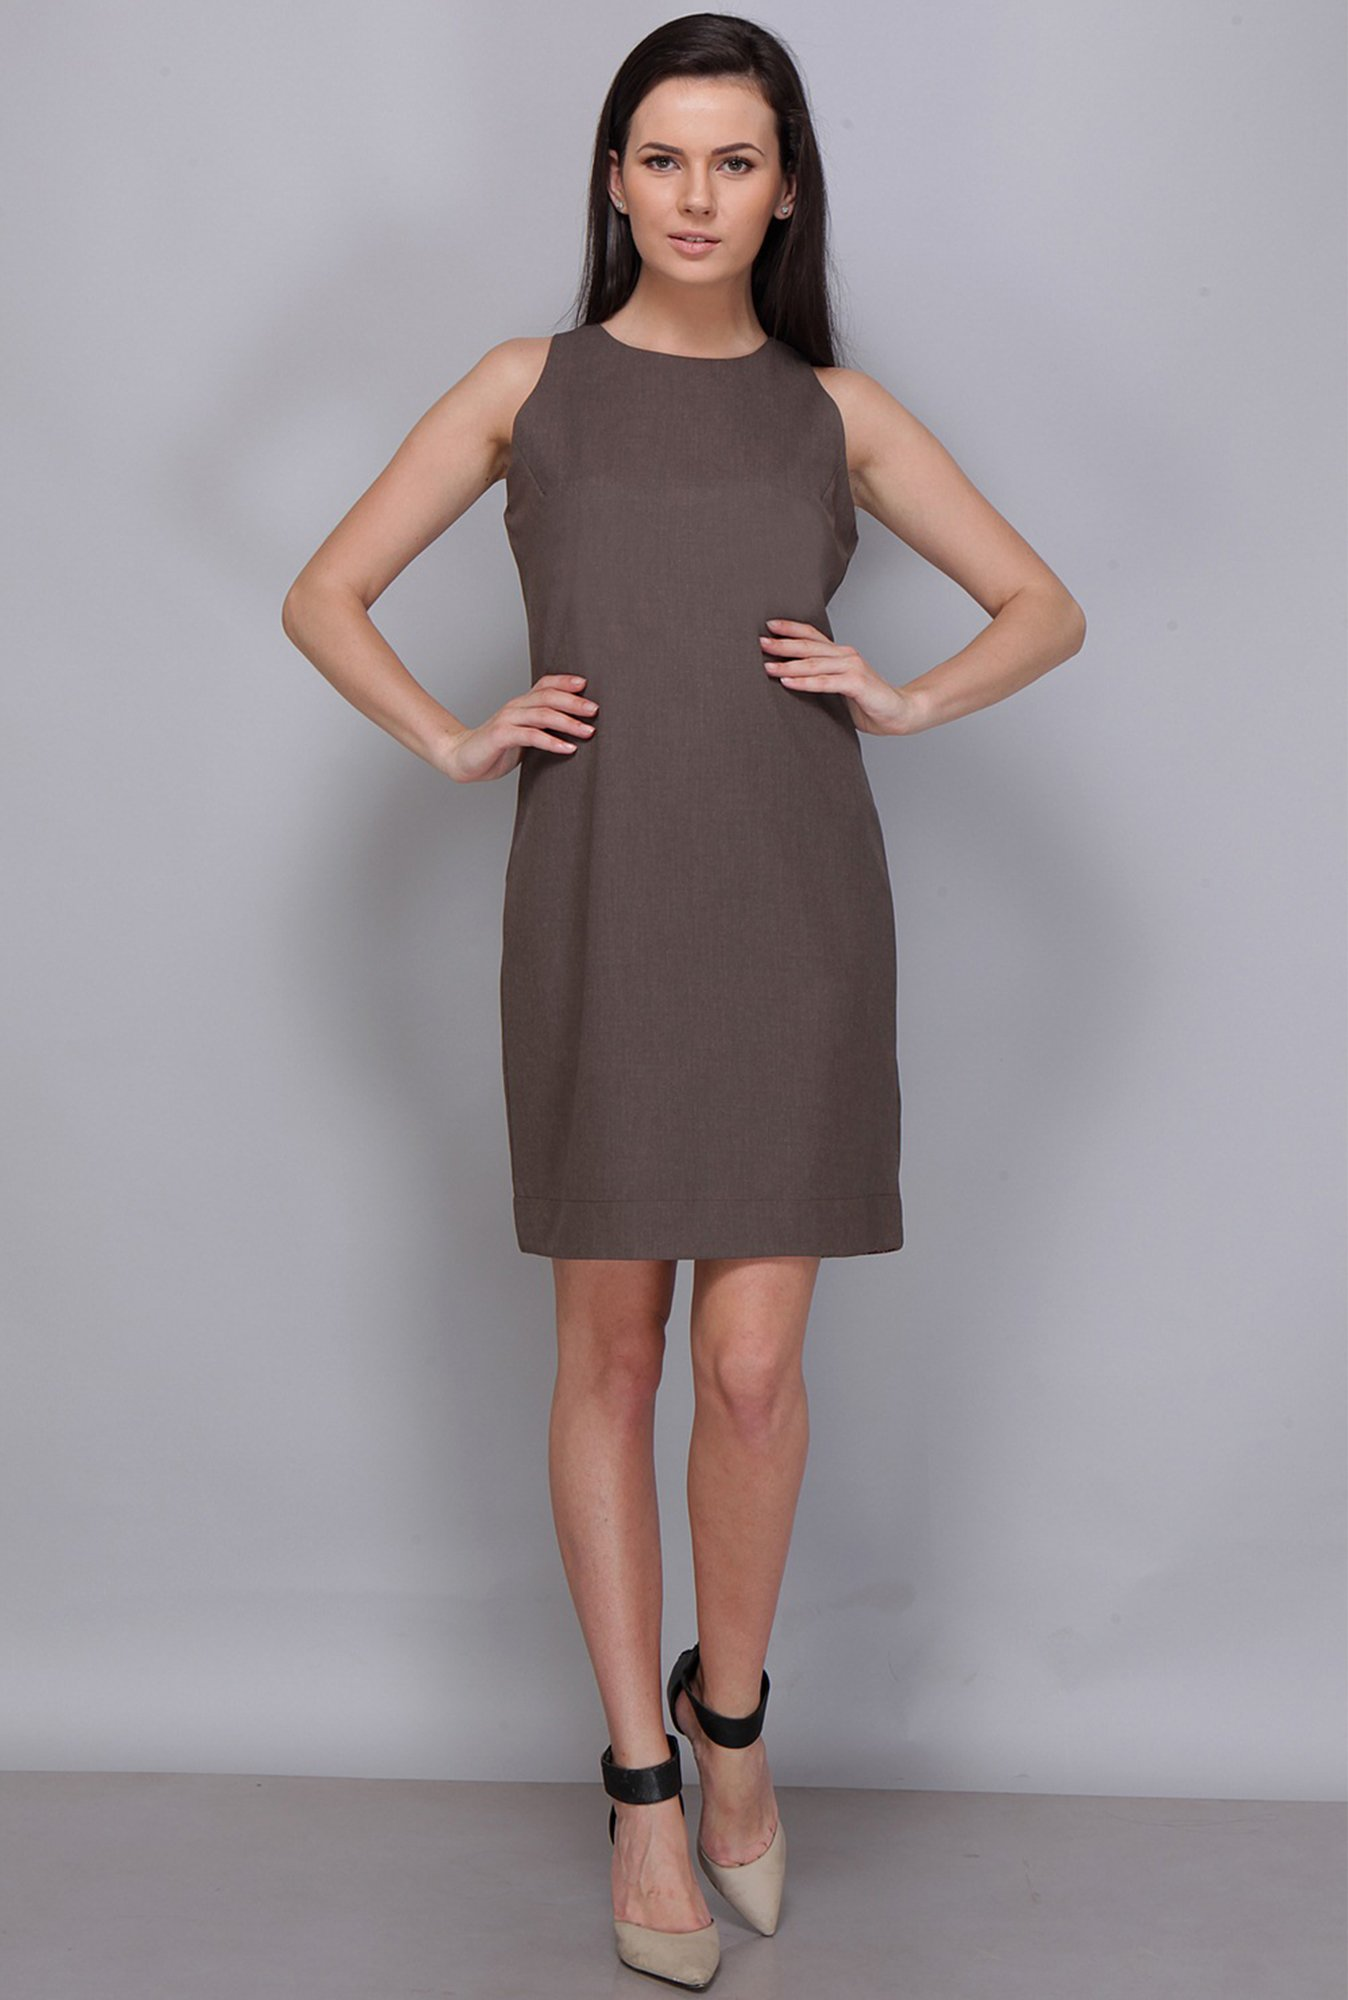 Kaaryah Coffee Solid Dress